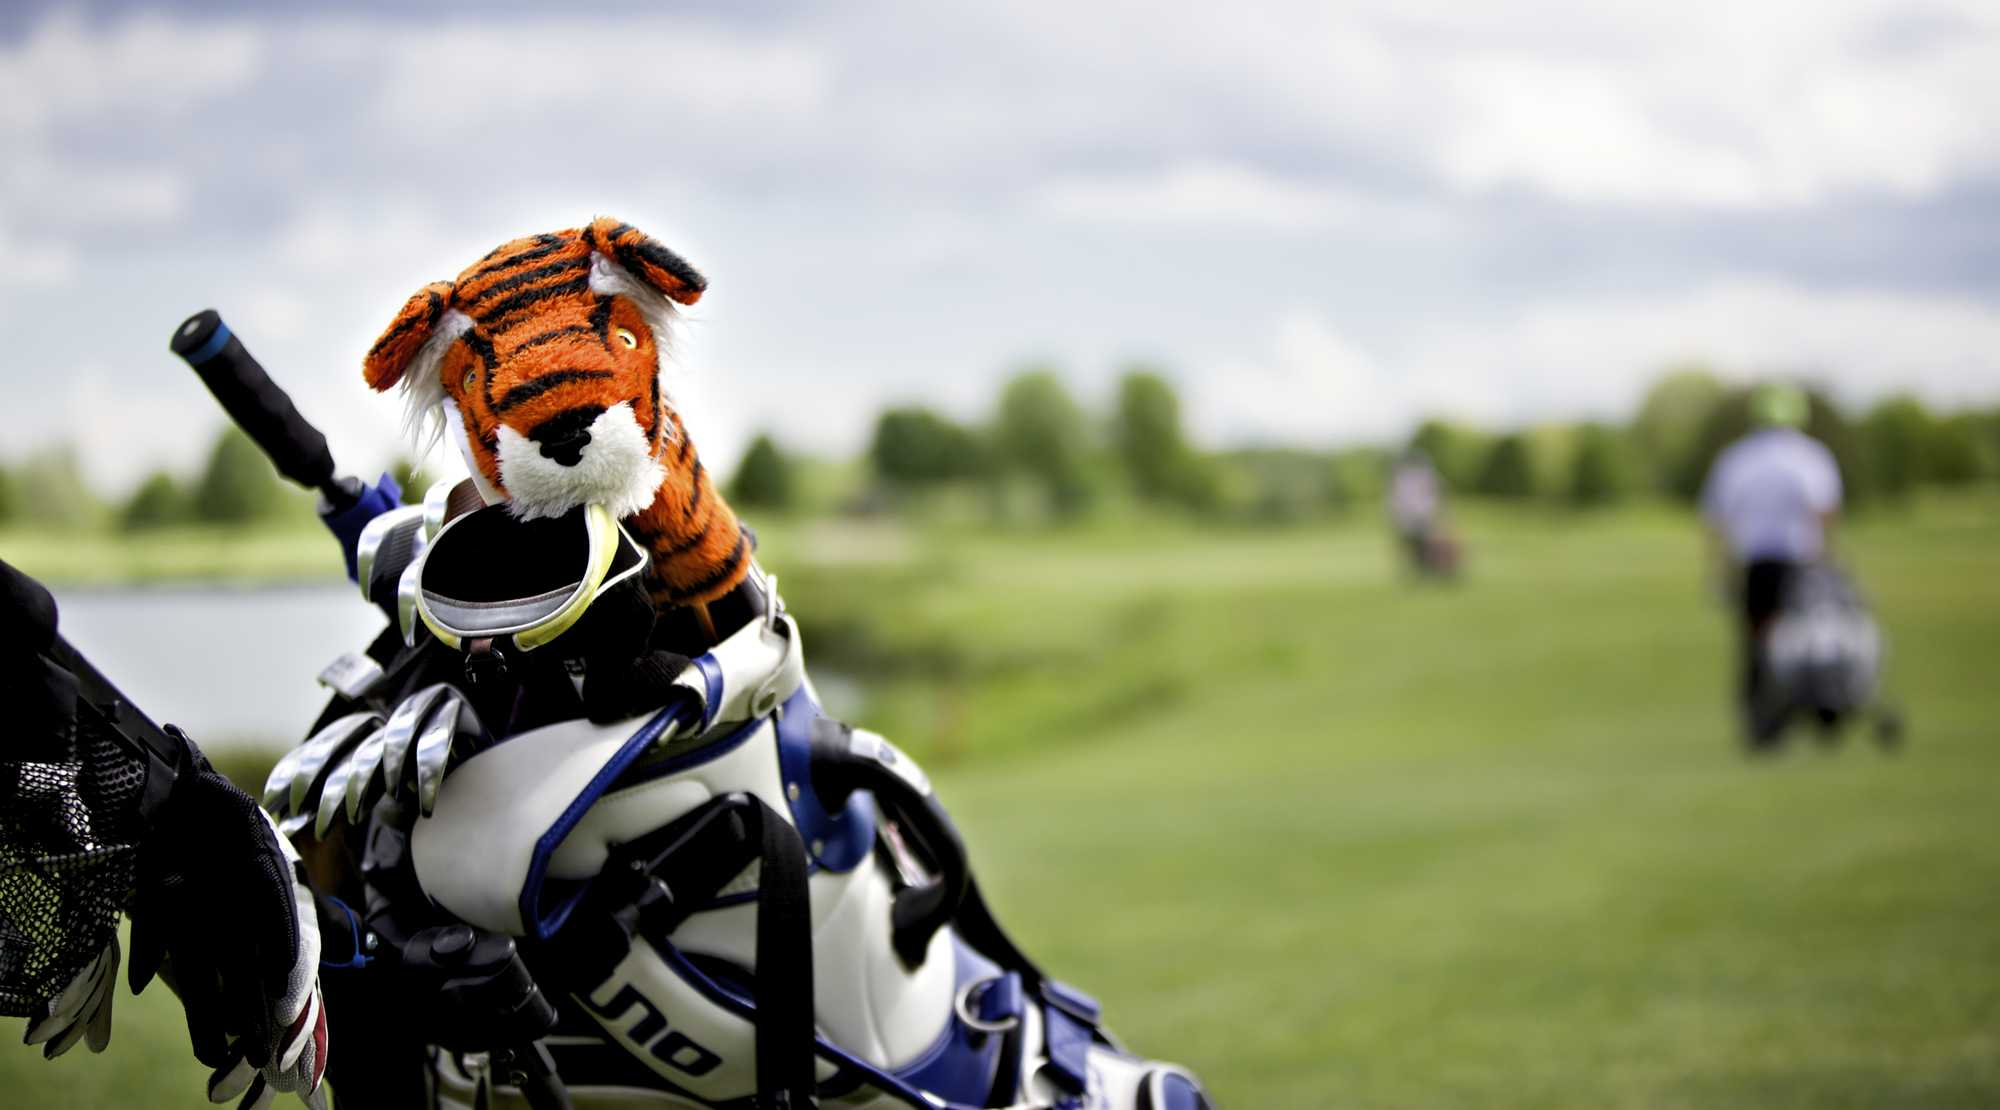 Why Socks Are Put On Golf Clubs